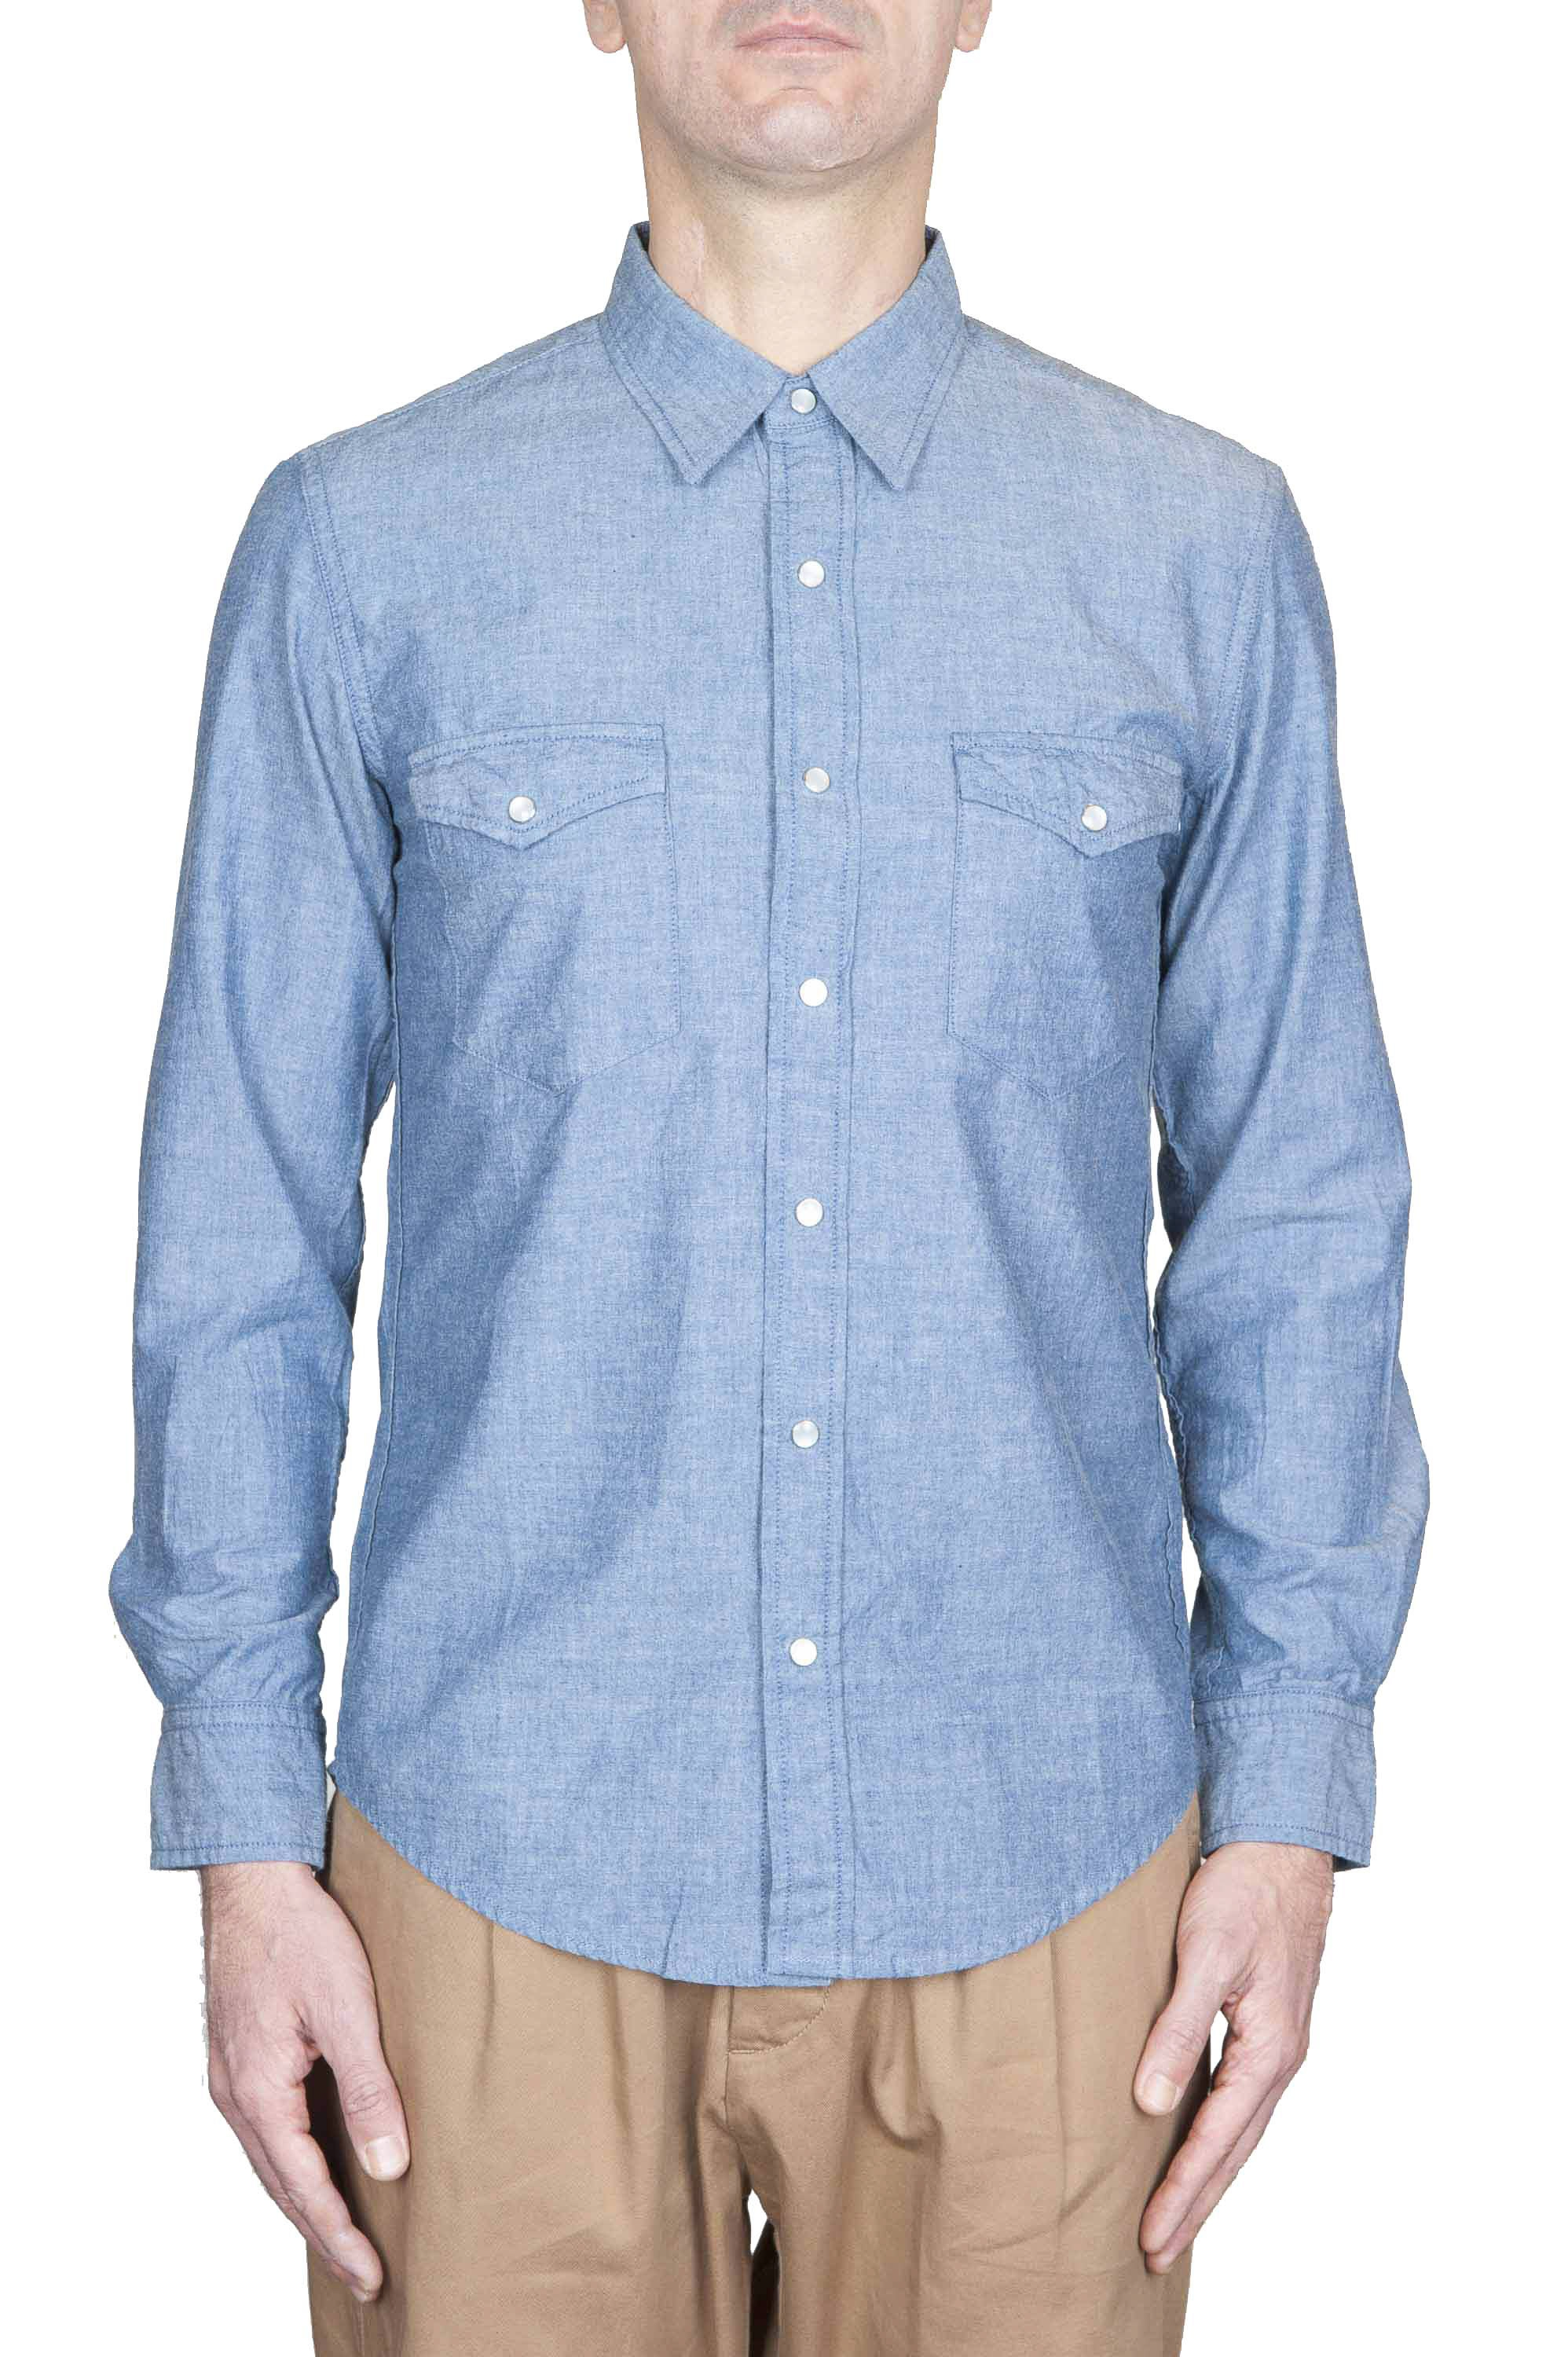 SBU 01615 Indigo chambray cotton western shirt 01